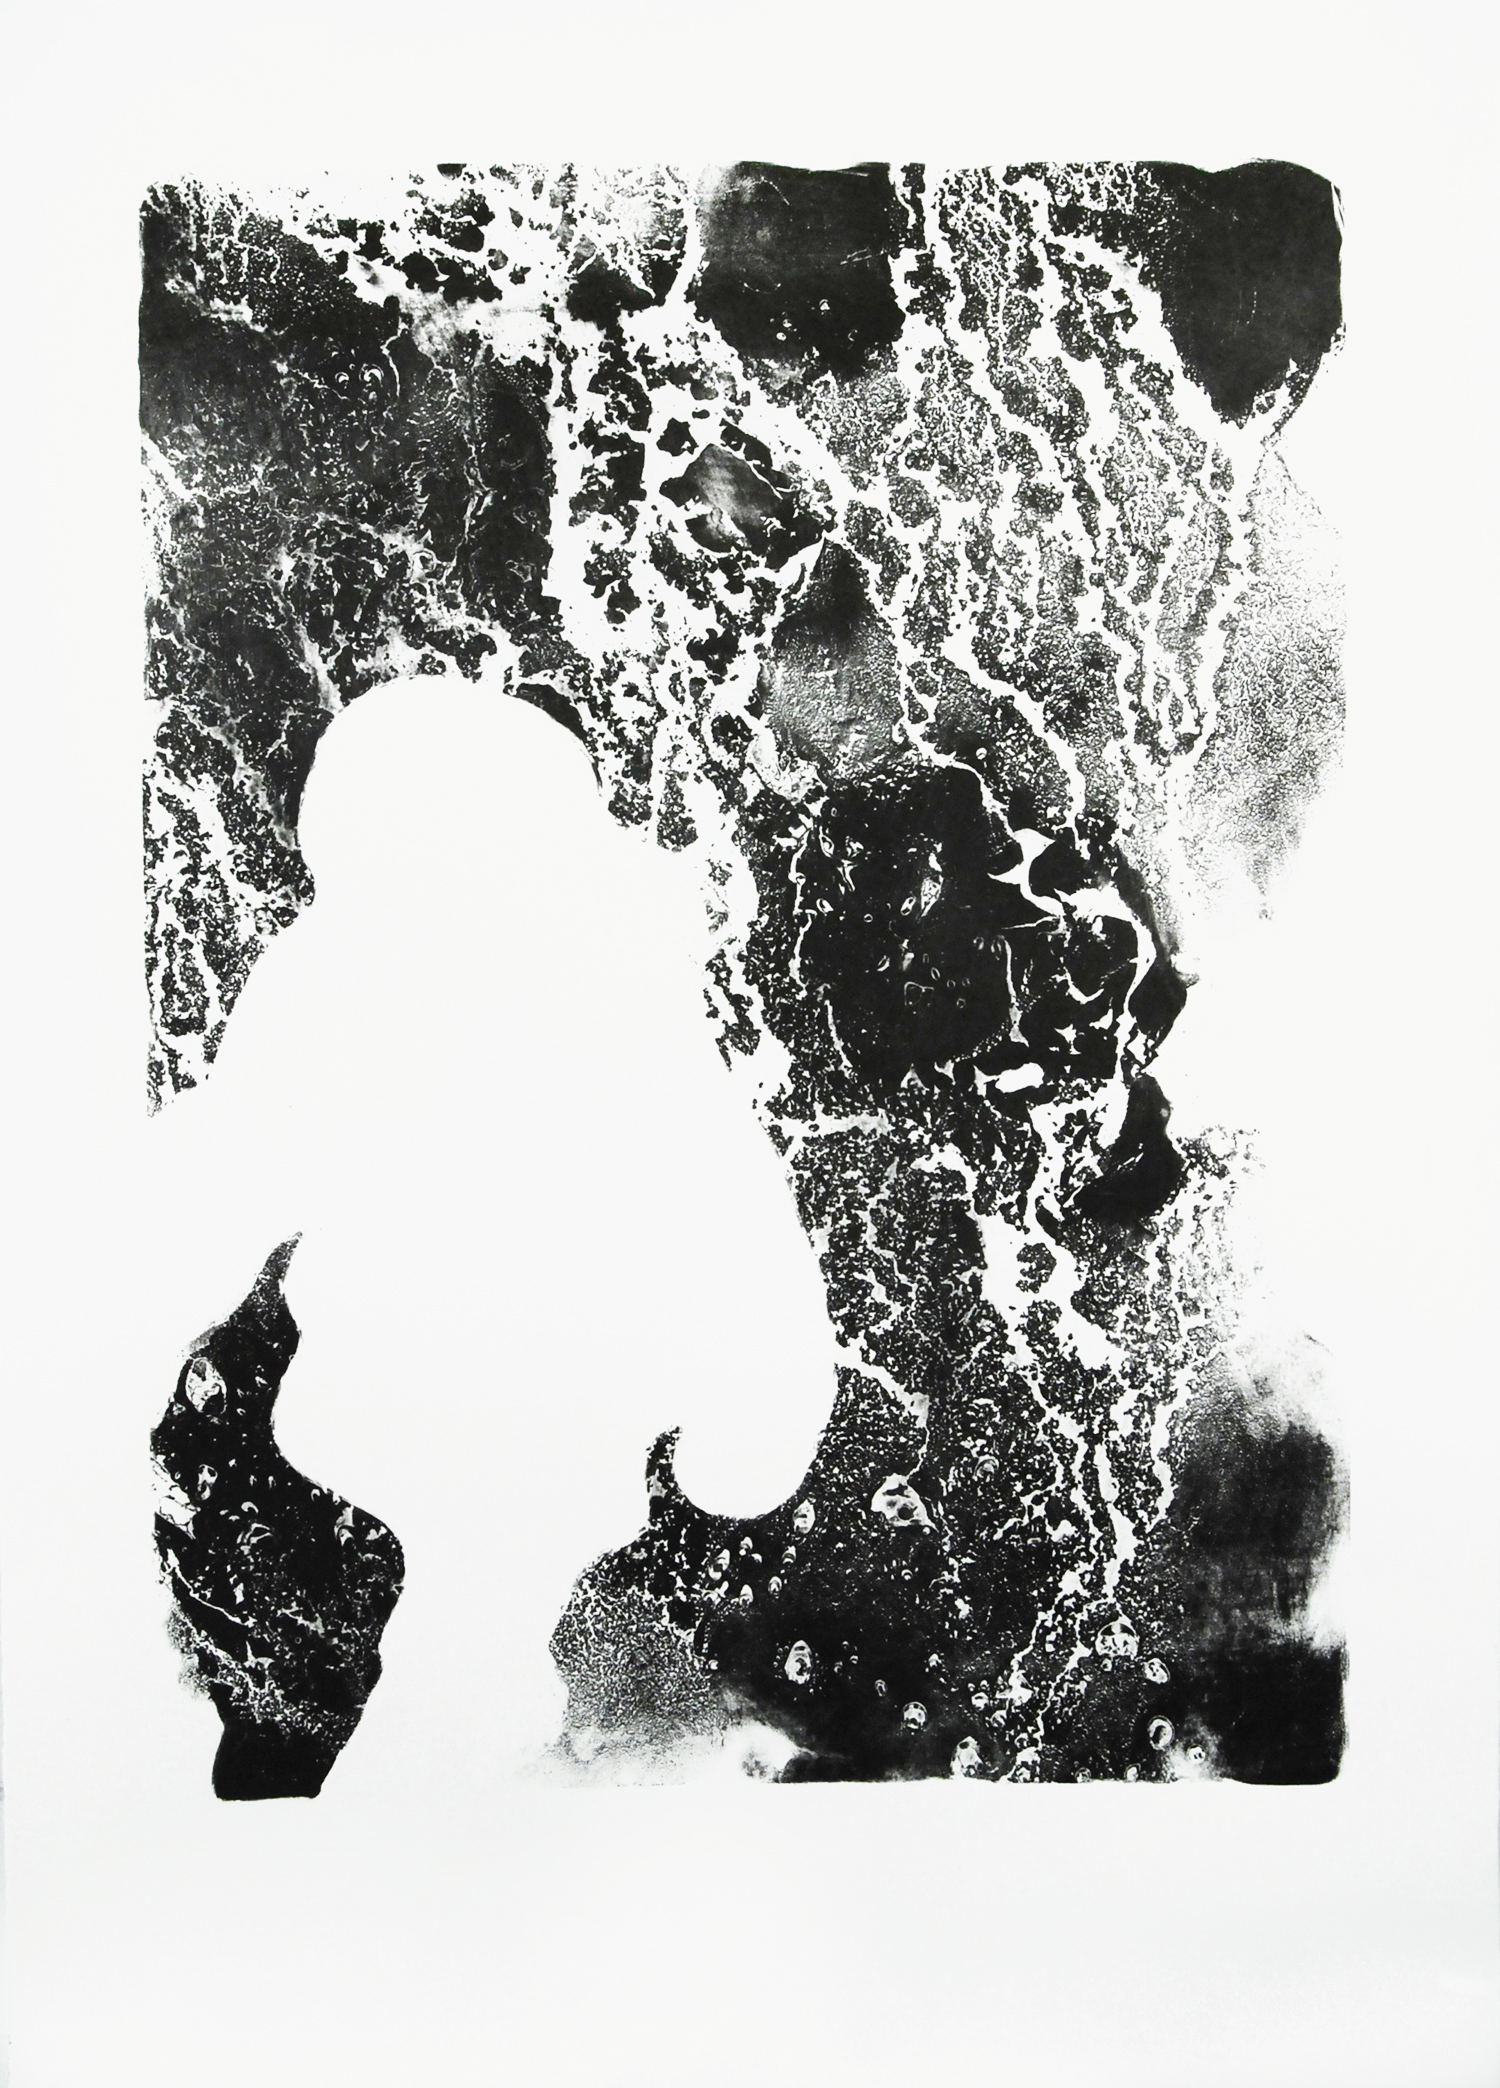 Departure 1 , stone lithography (石板画), 22x30 inches, edition of 2, 2014